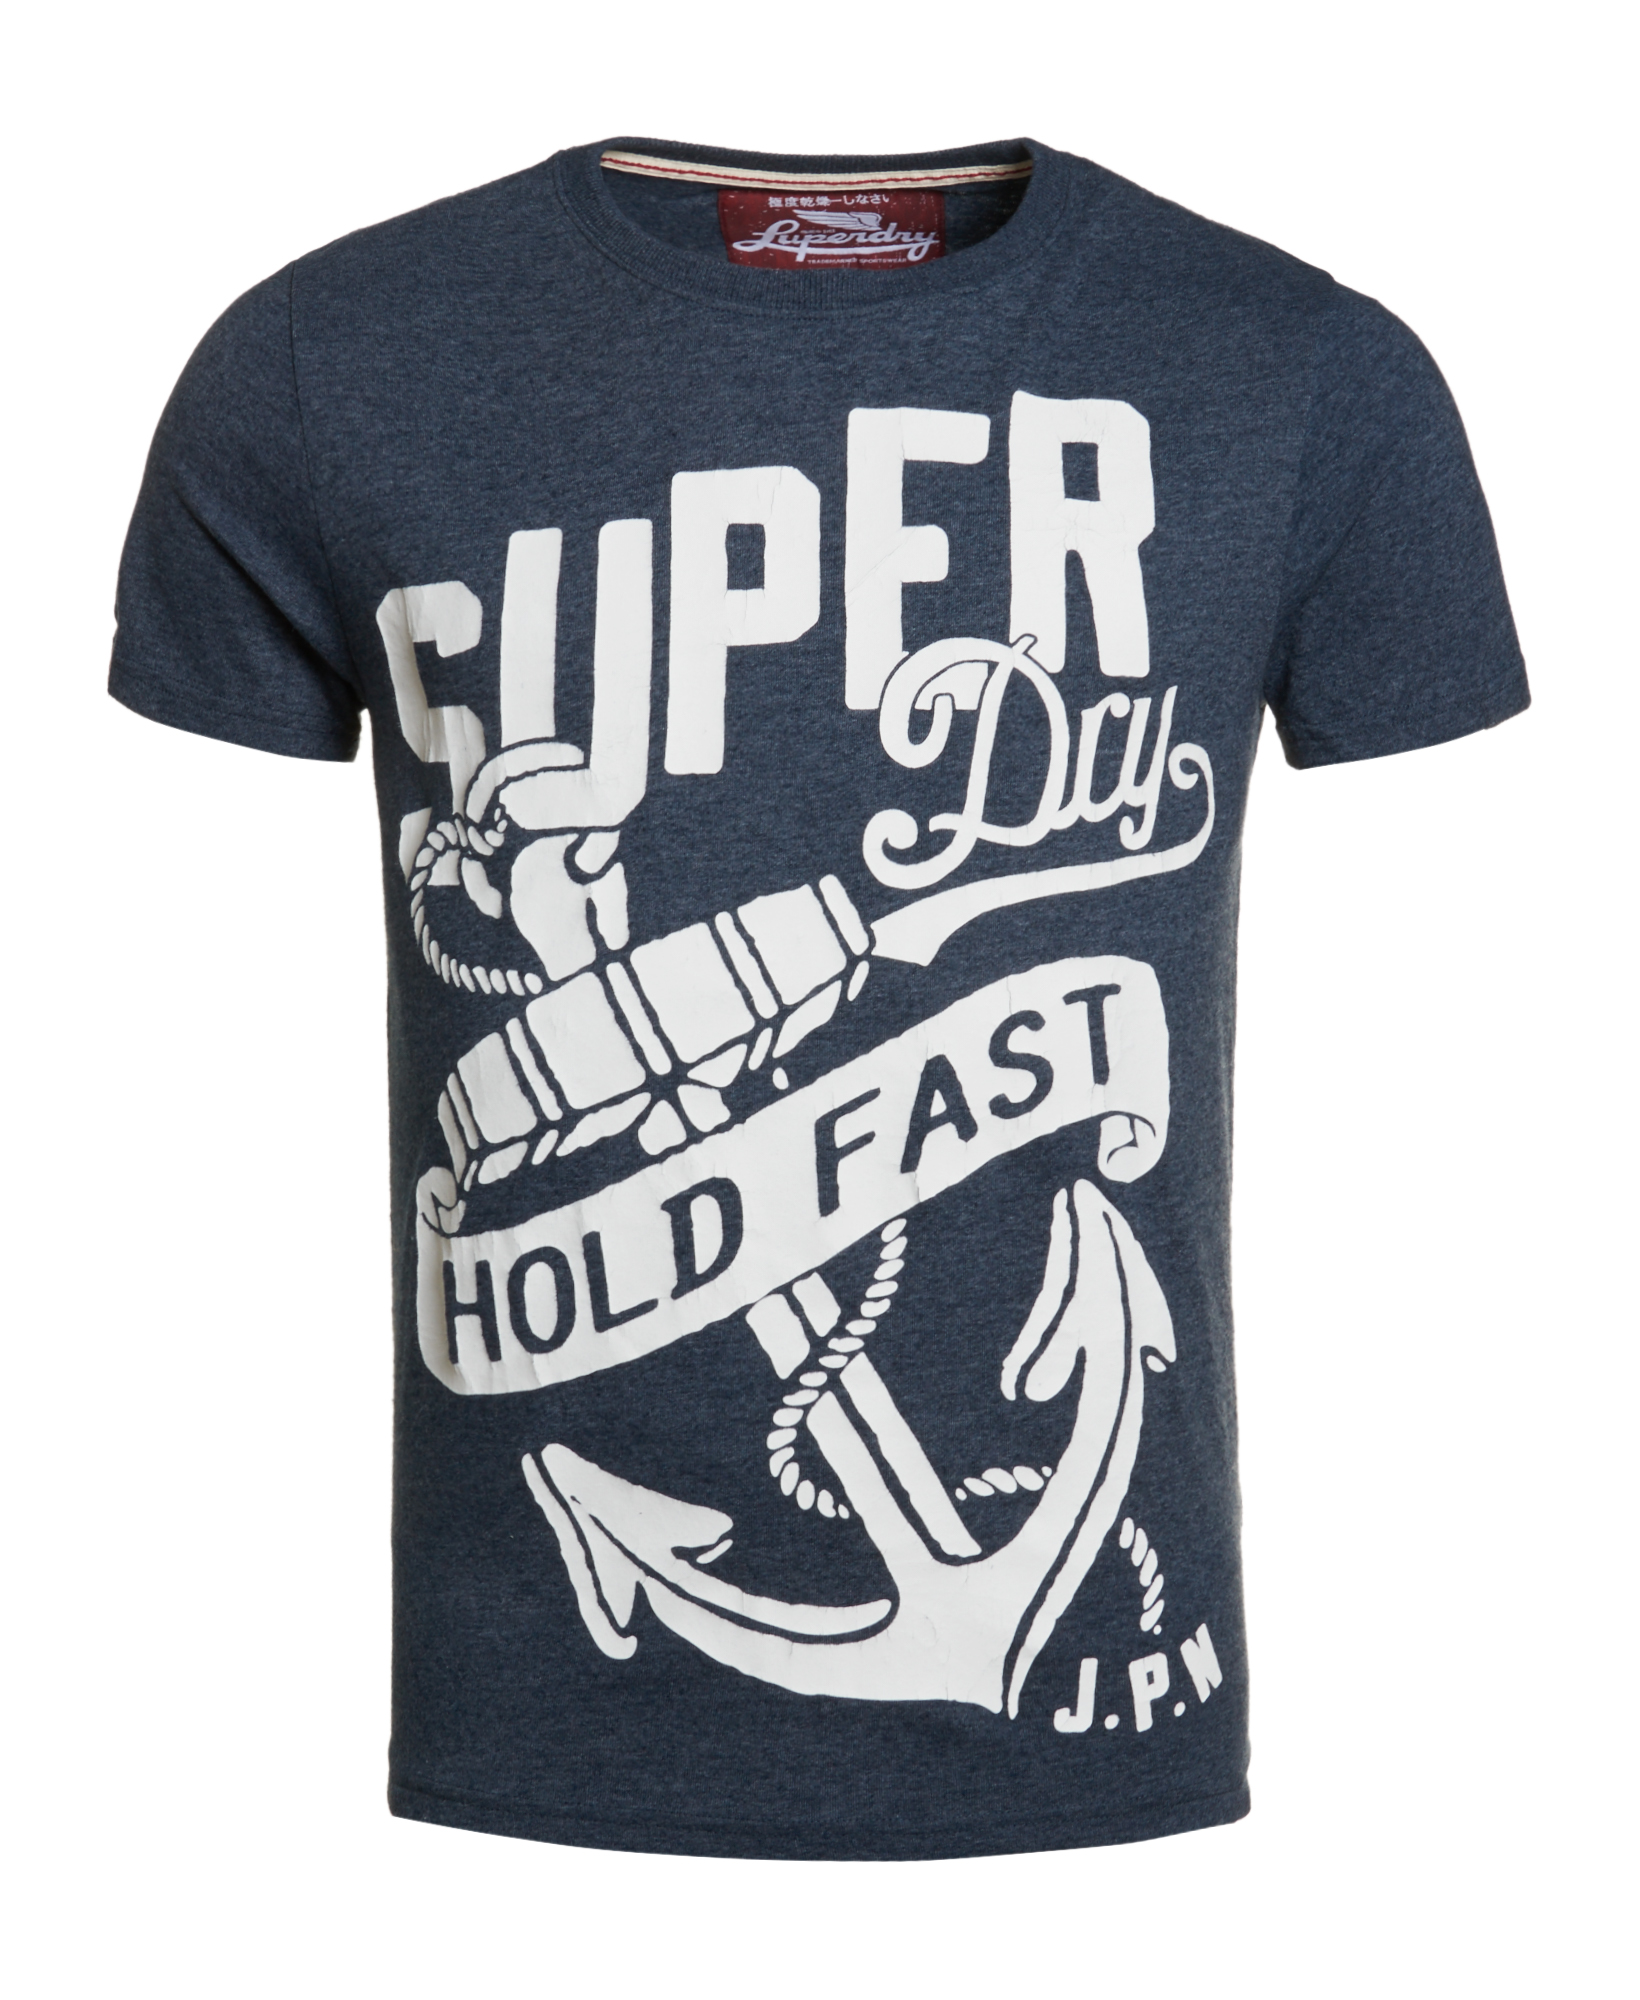 about new mens superdry factory second hold fast t shirt imperial navy. Black Bedroom Furniture Sets. Home Design Ideas